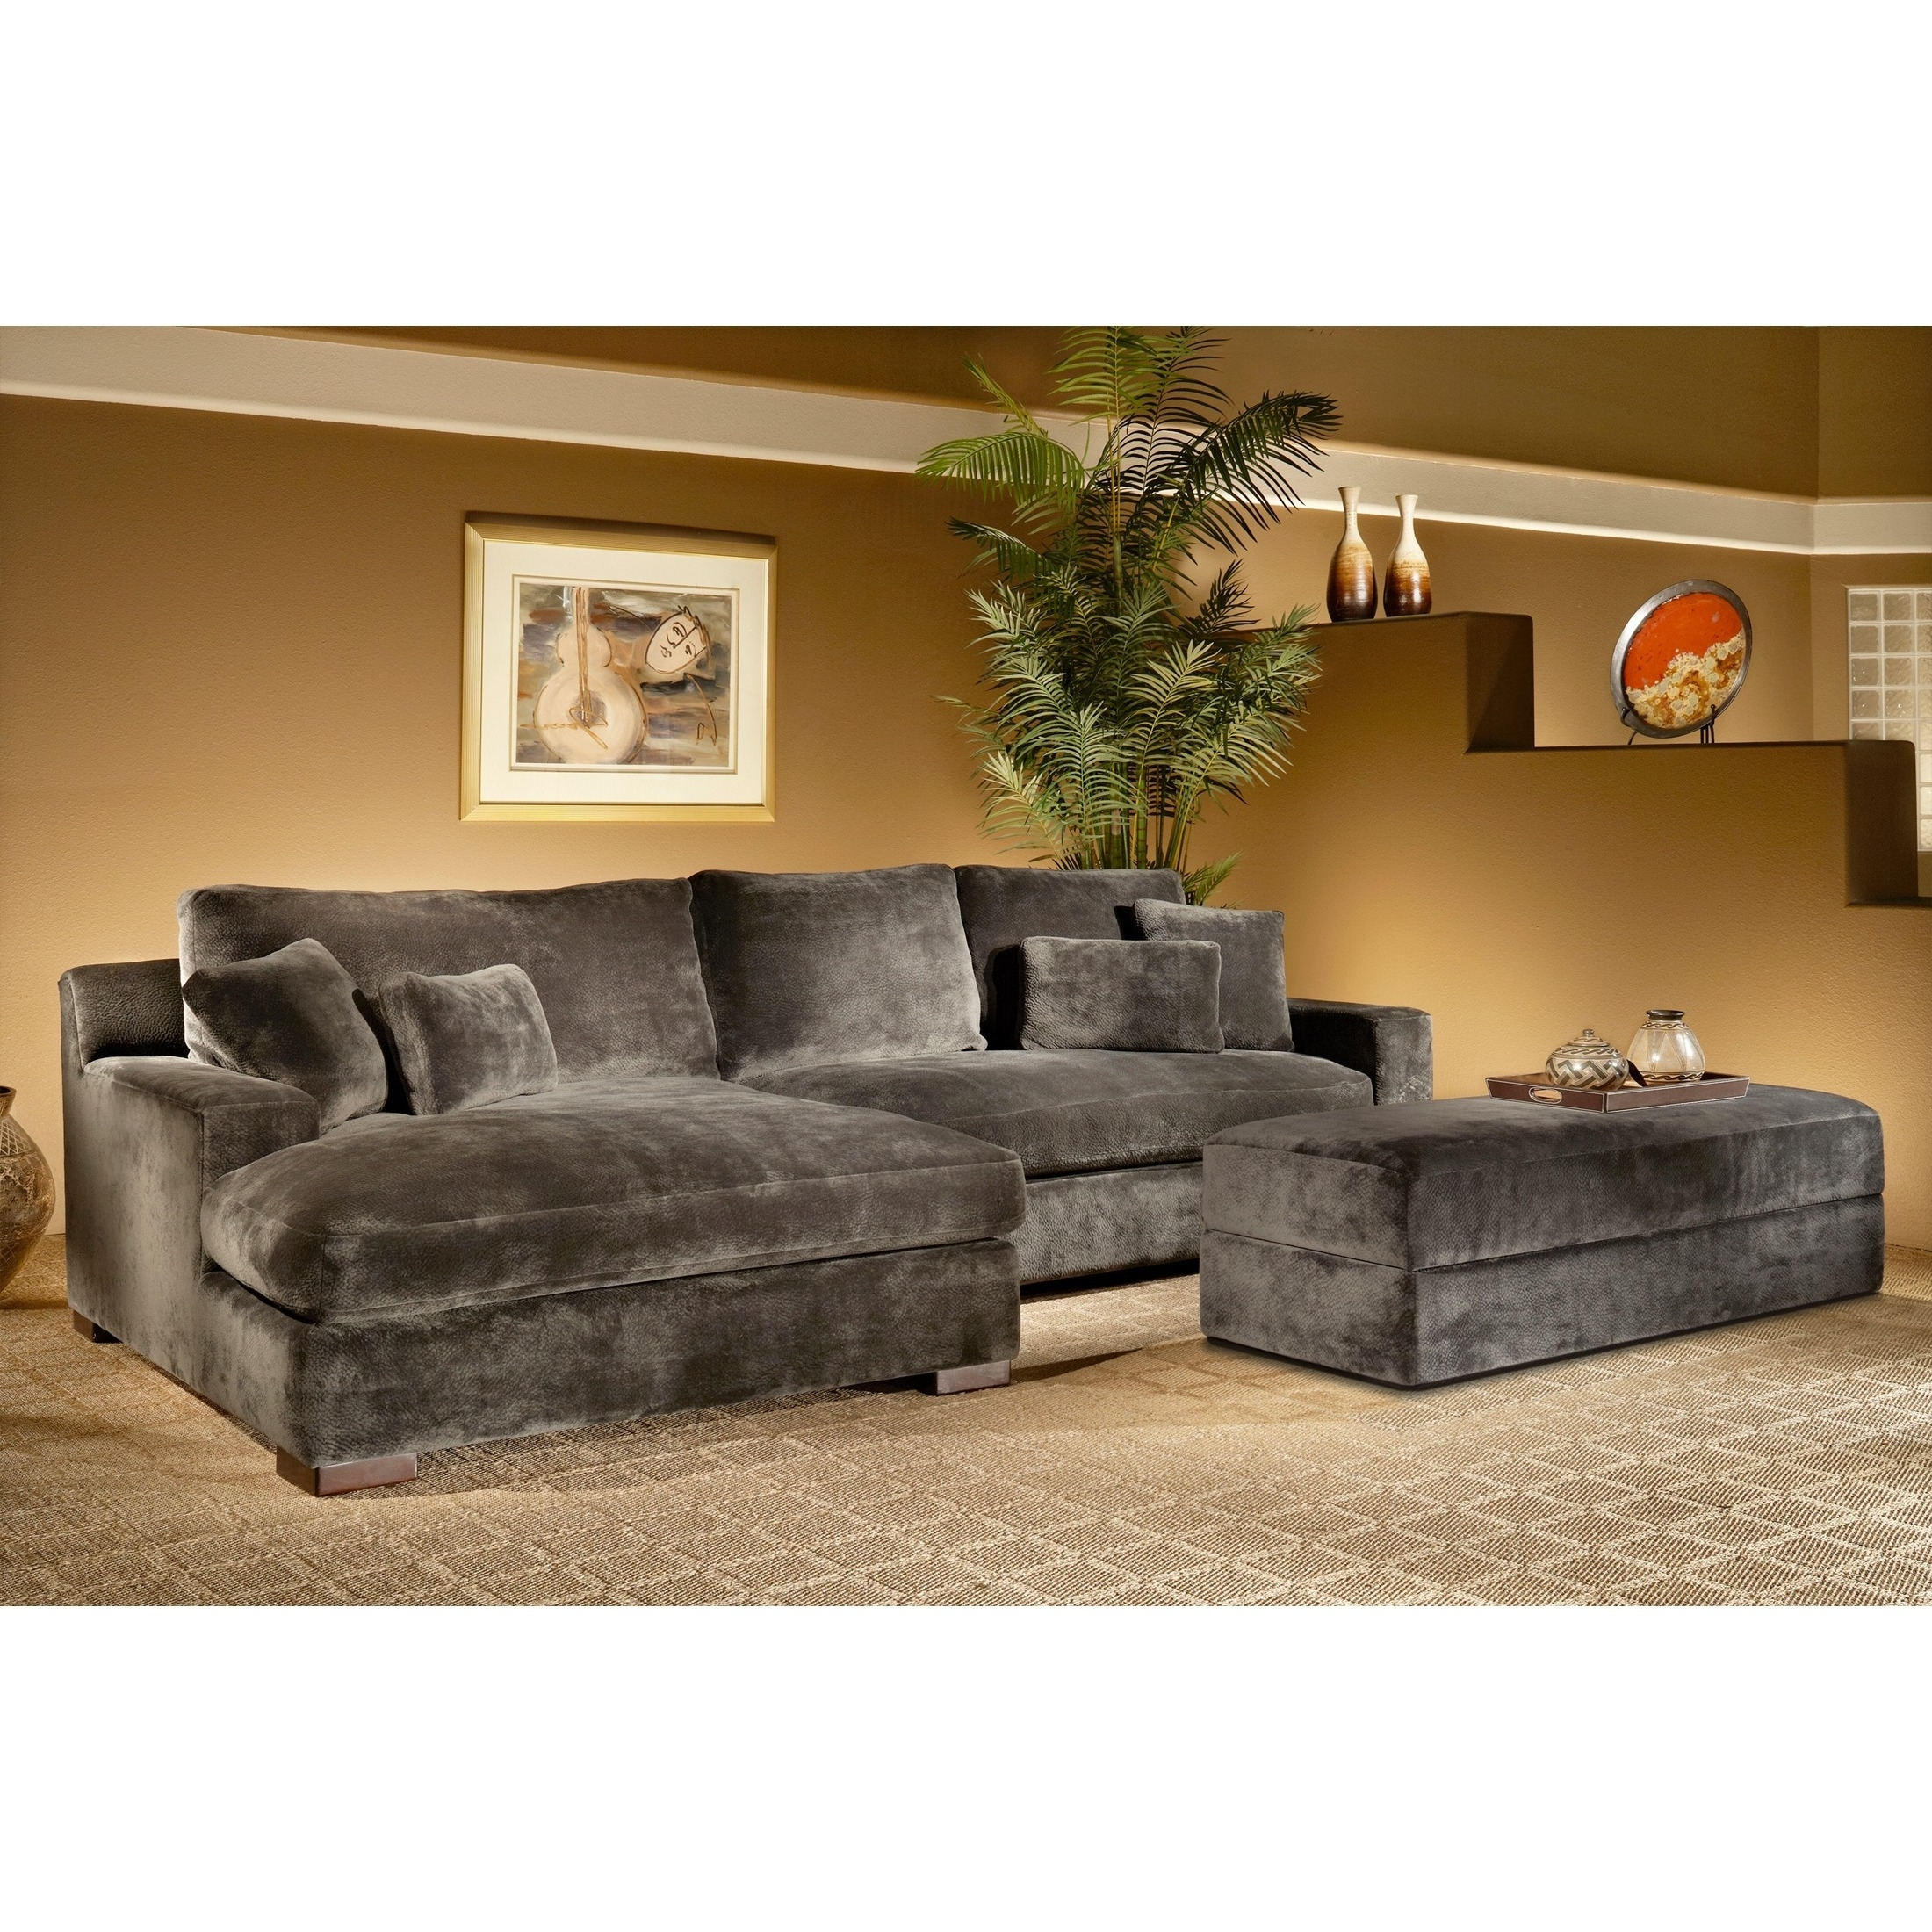 Wide Seat Sectional Sofas Inside Well Known The Doris 3 Piece Smoke Sectional Sofa With Storage Ottoman Is (View 15 of 15)